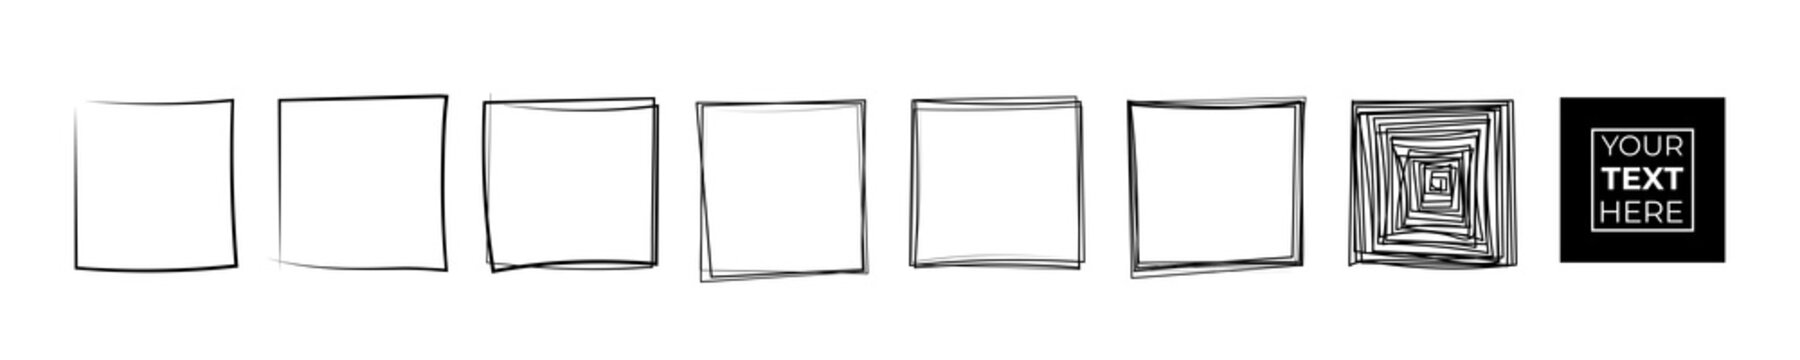 Set of hand drawn pen and pencil black square. Quadrate frame sketch on white background. Continuous line art doodle vector illustration